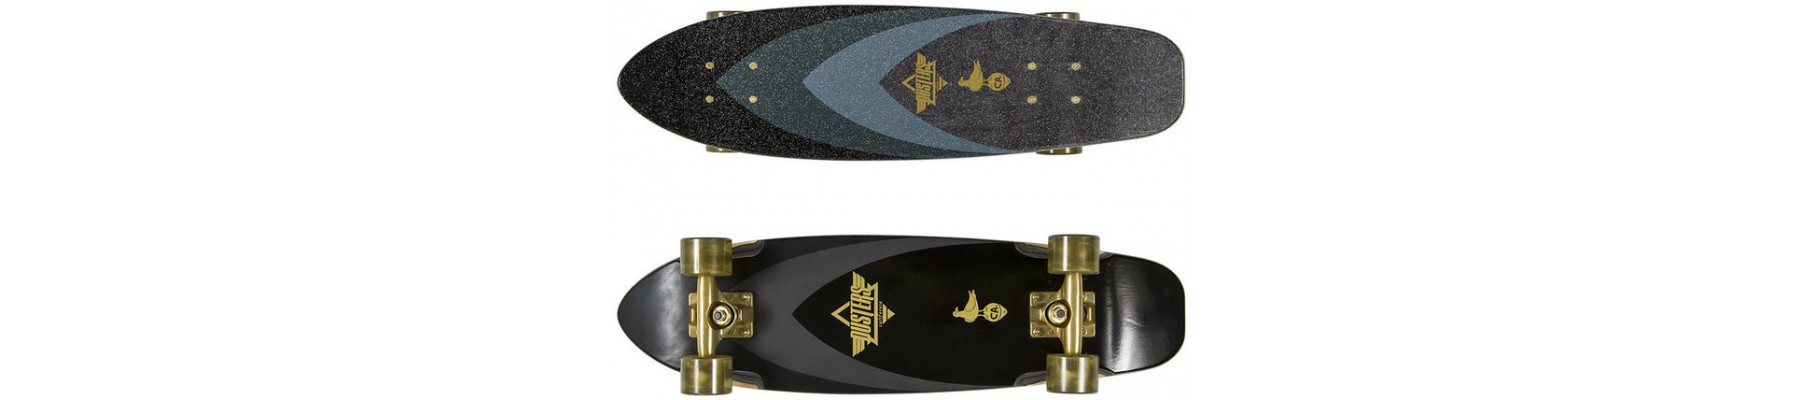 Dusters California BlkGold Bird Raven 27